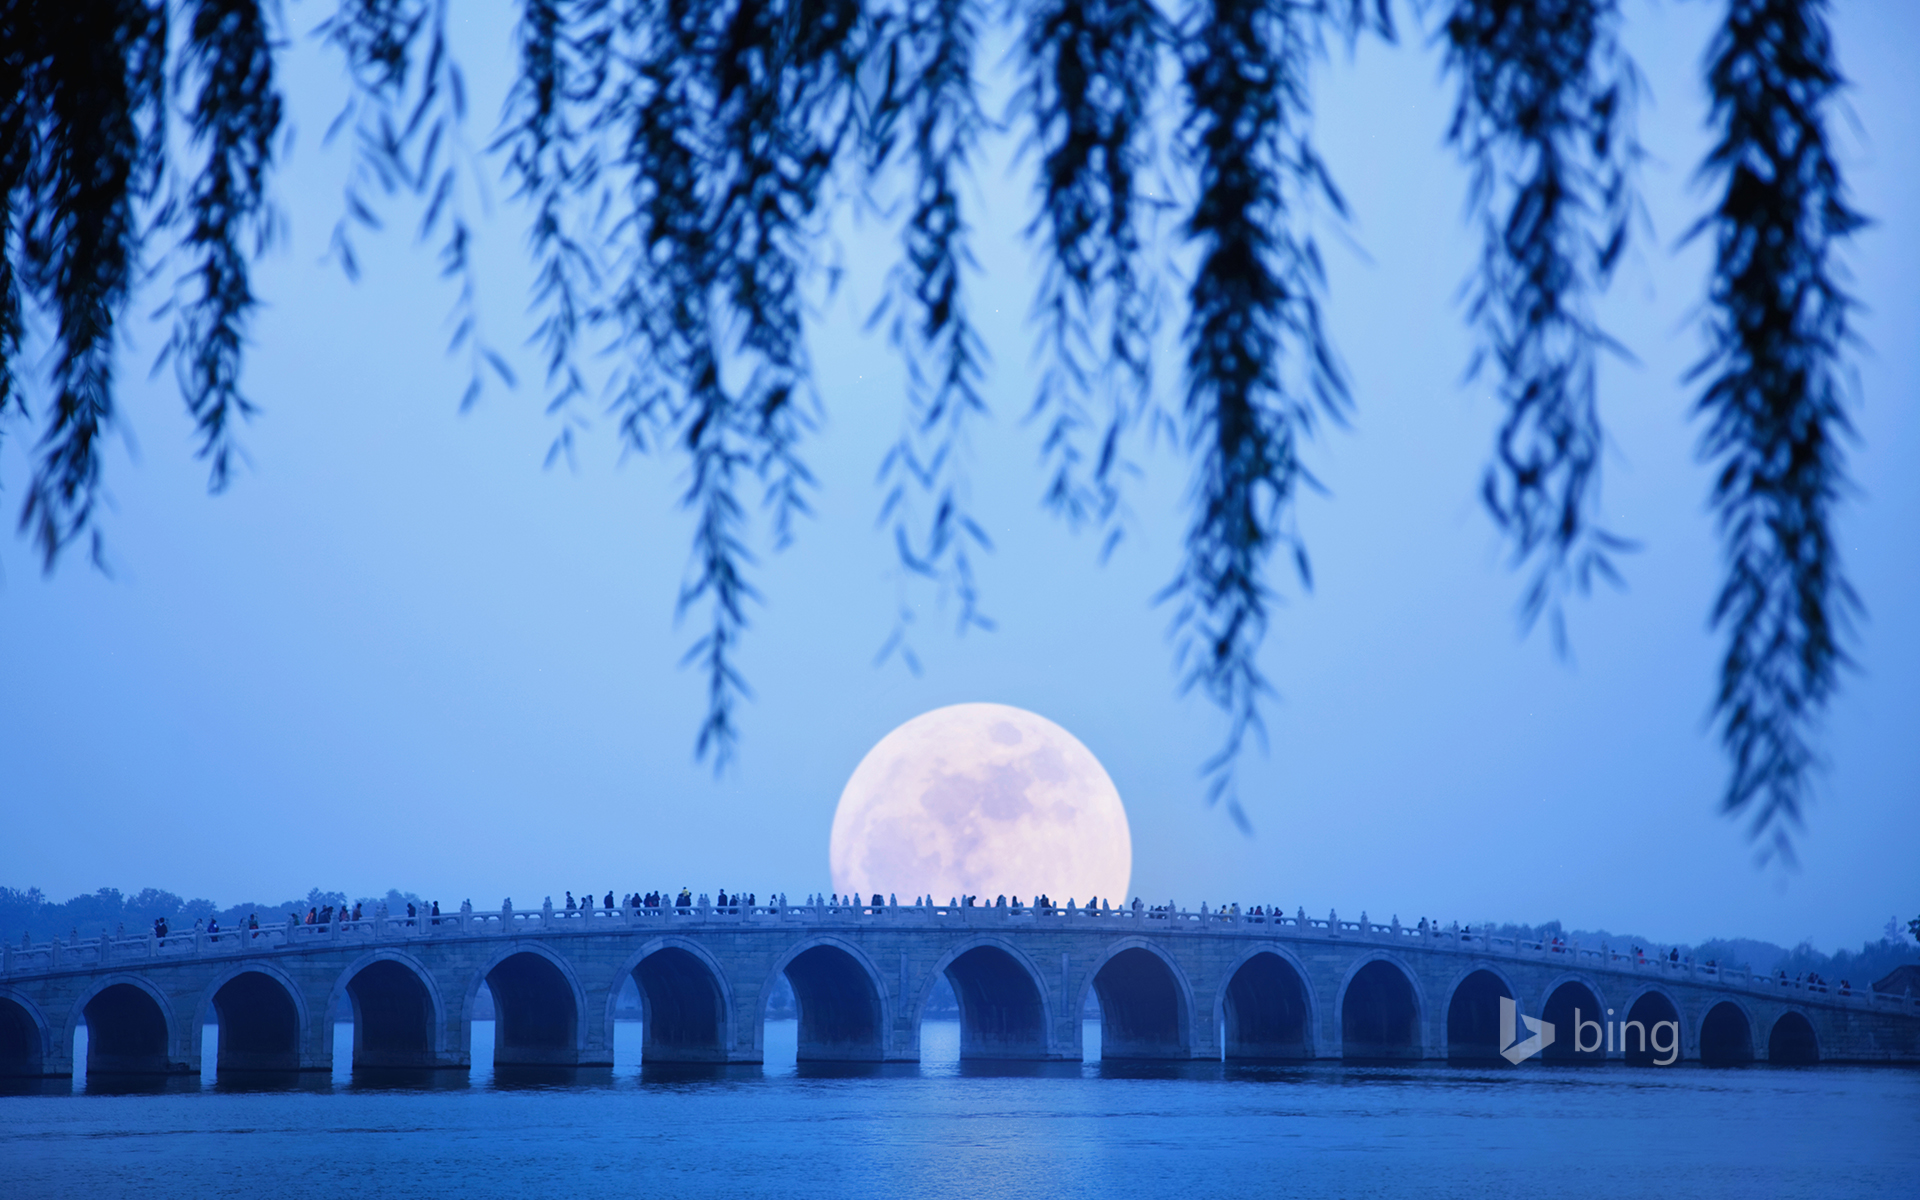 Moonrise over Seventeen Arch Bridge on Kunming Lake at the Summer Palace in Beijing, China